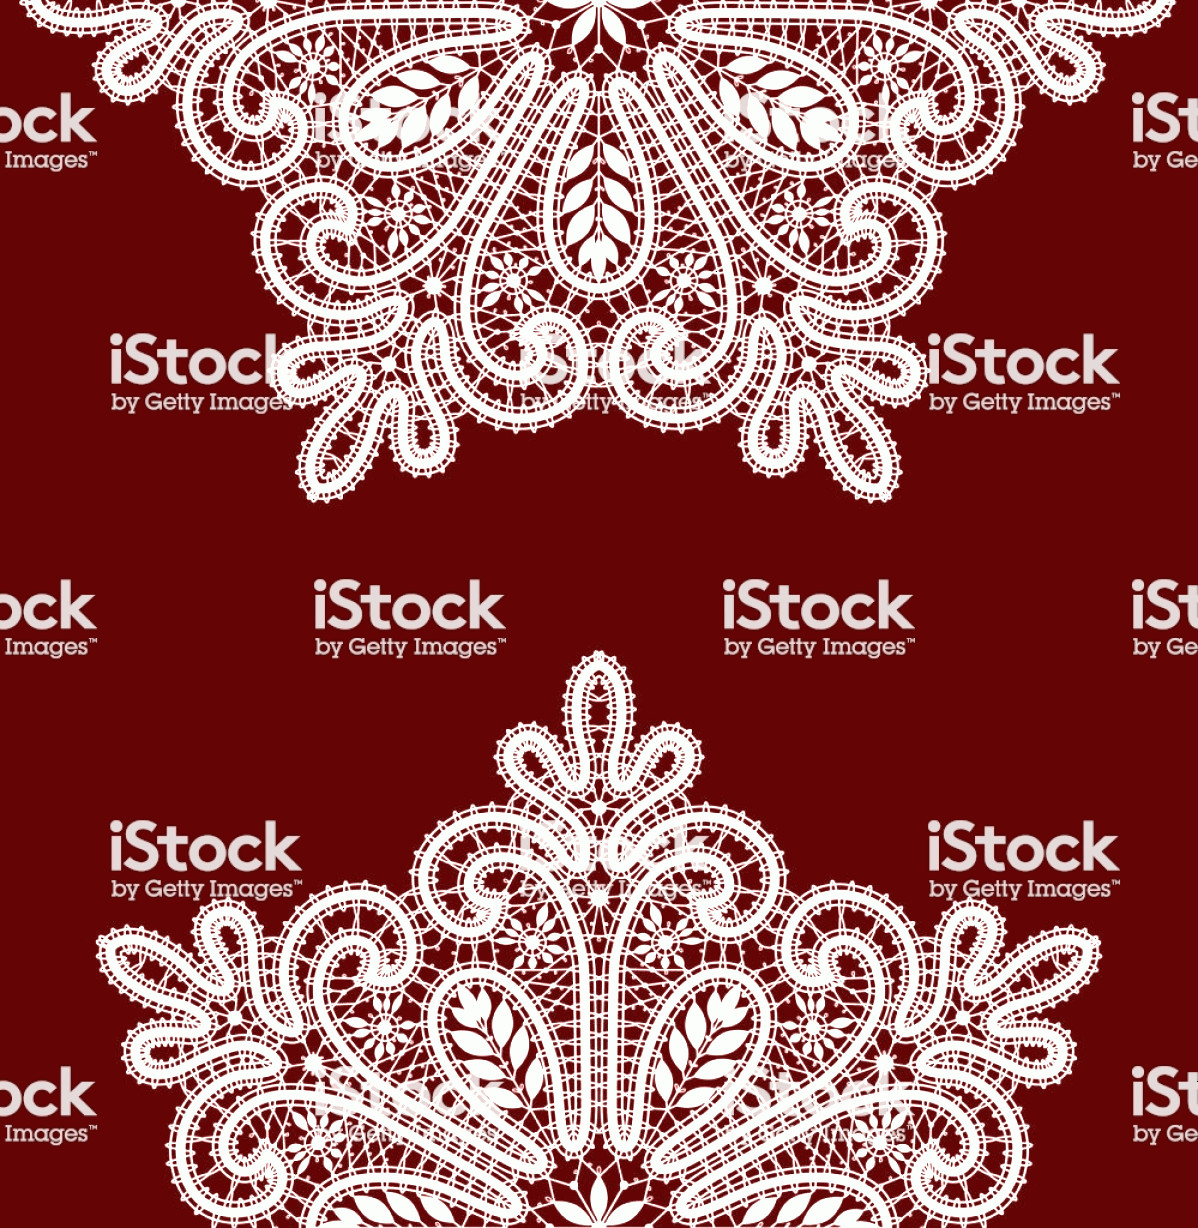 Lace Vector Images Free Clip Art: Vector Lace White Clip Art New Year Background Gm